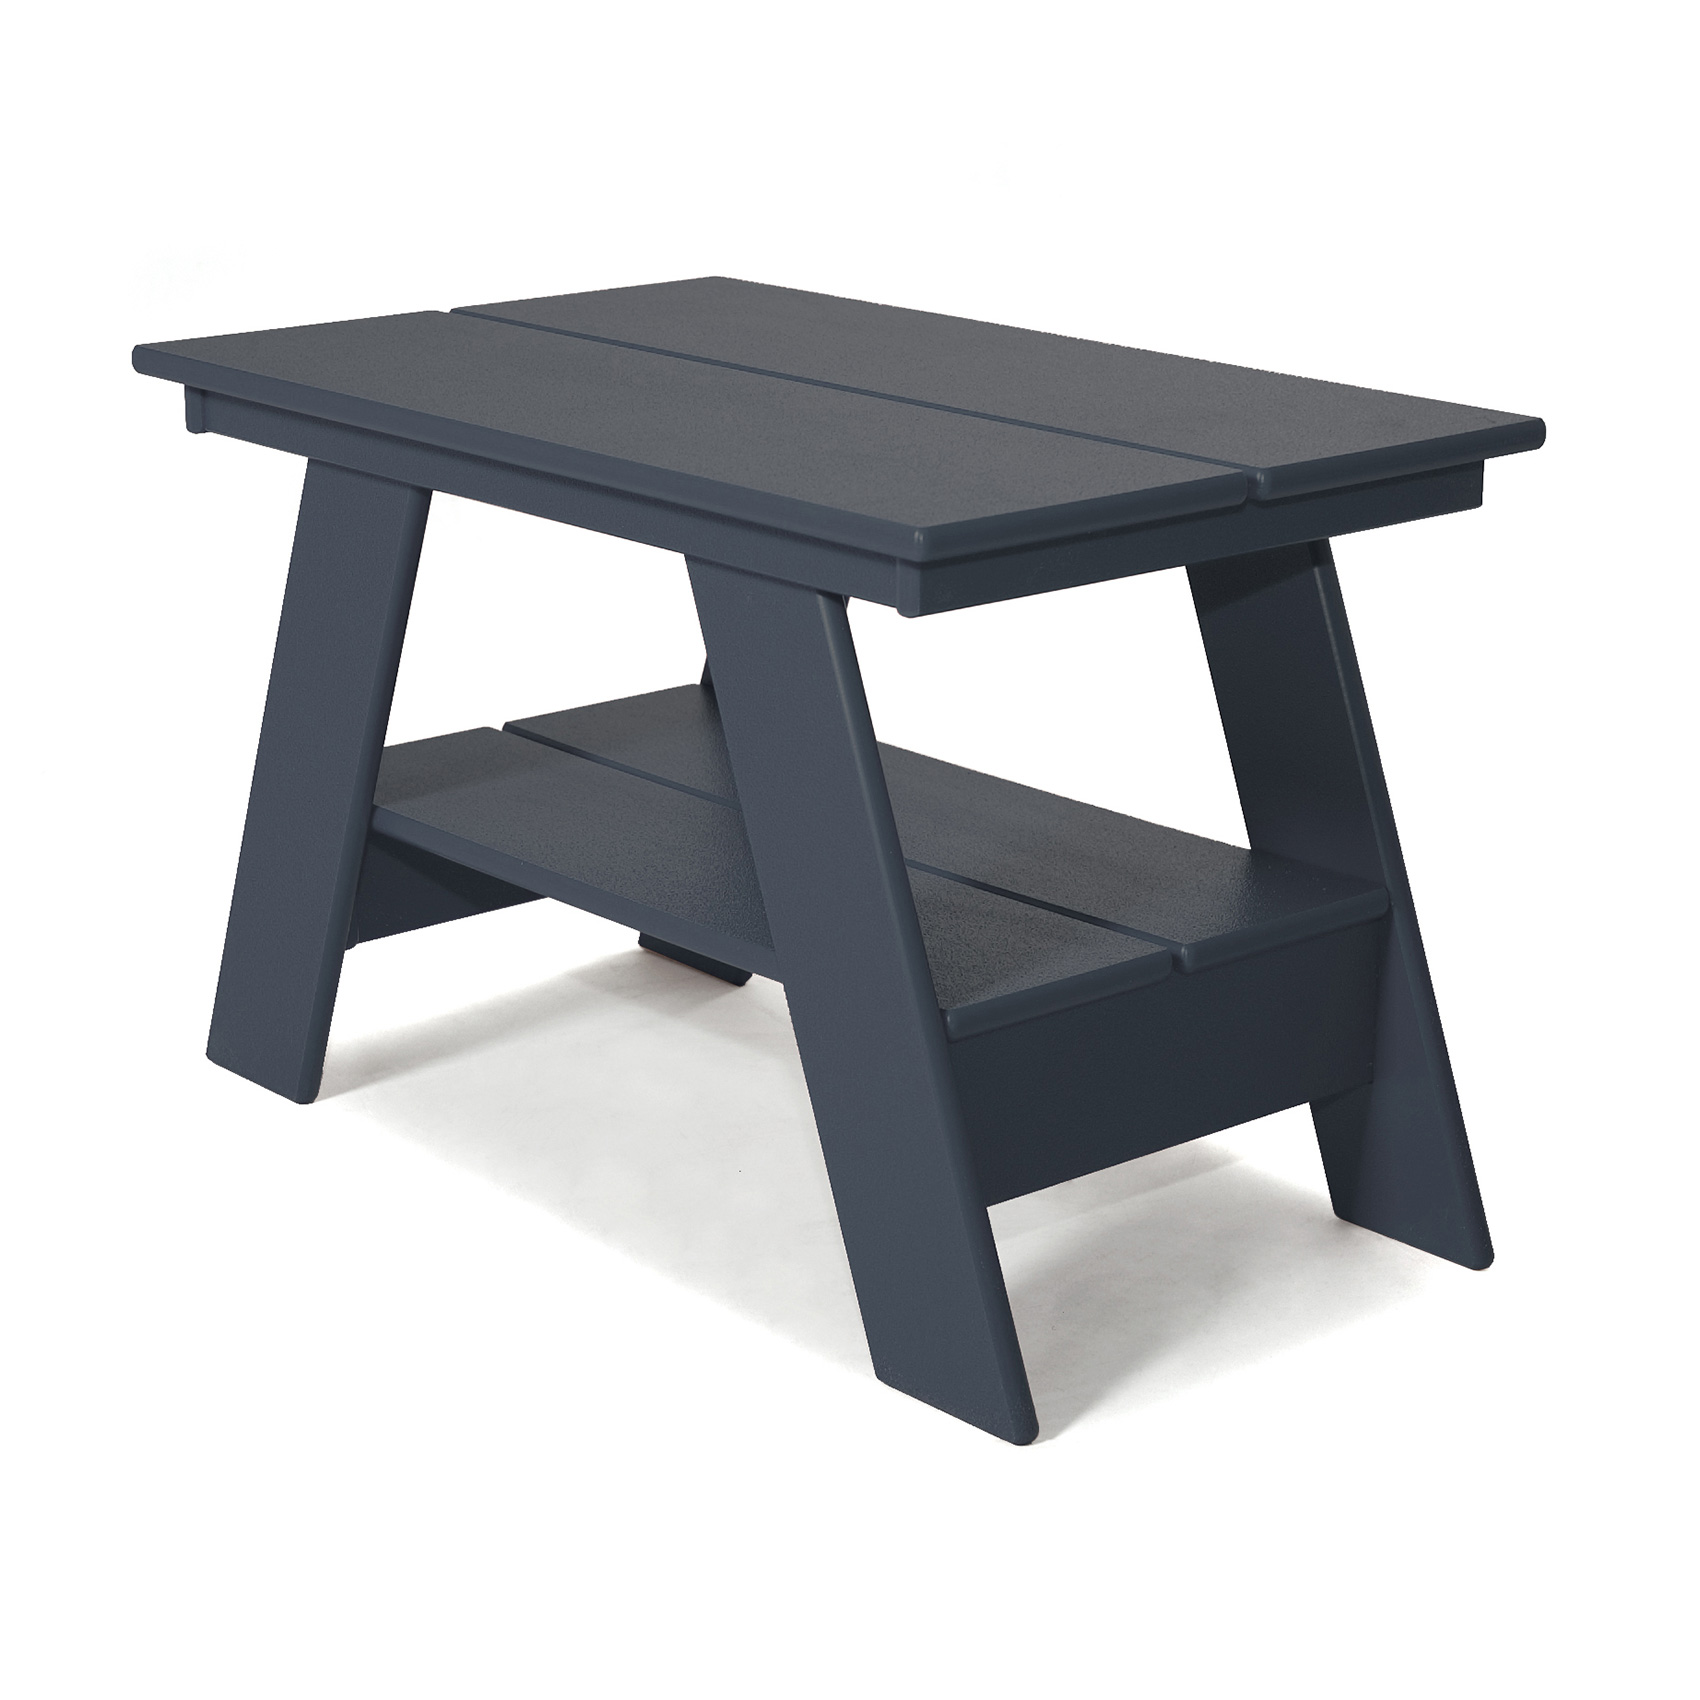 modern outdoor side table adirondack style loll designs grey gray the pier furniture ikea garden chairs rose gold bedside maple dining room mission end tables chrome desk legs